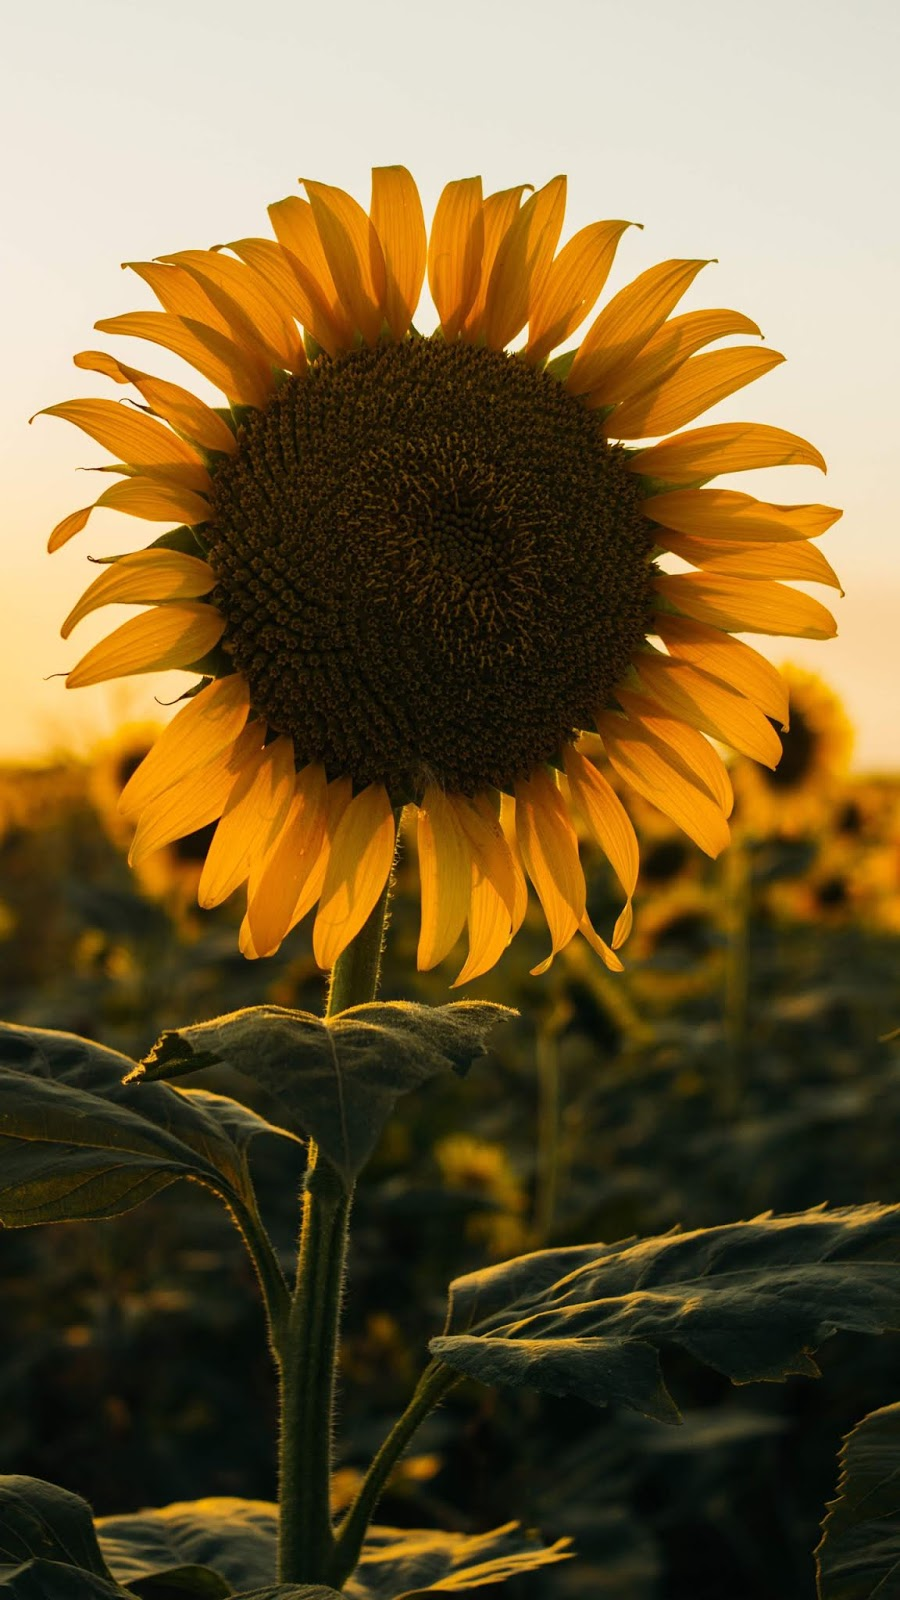 Sunflower in the sunset android wallpaper